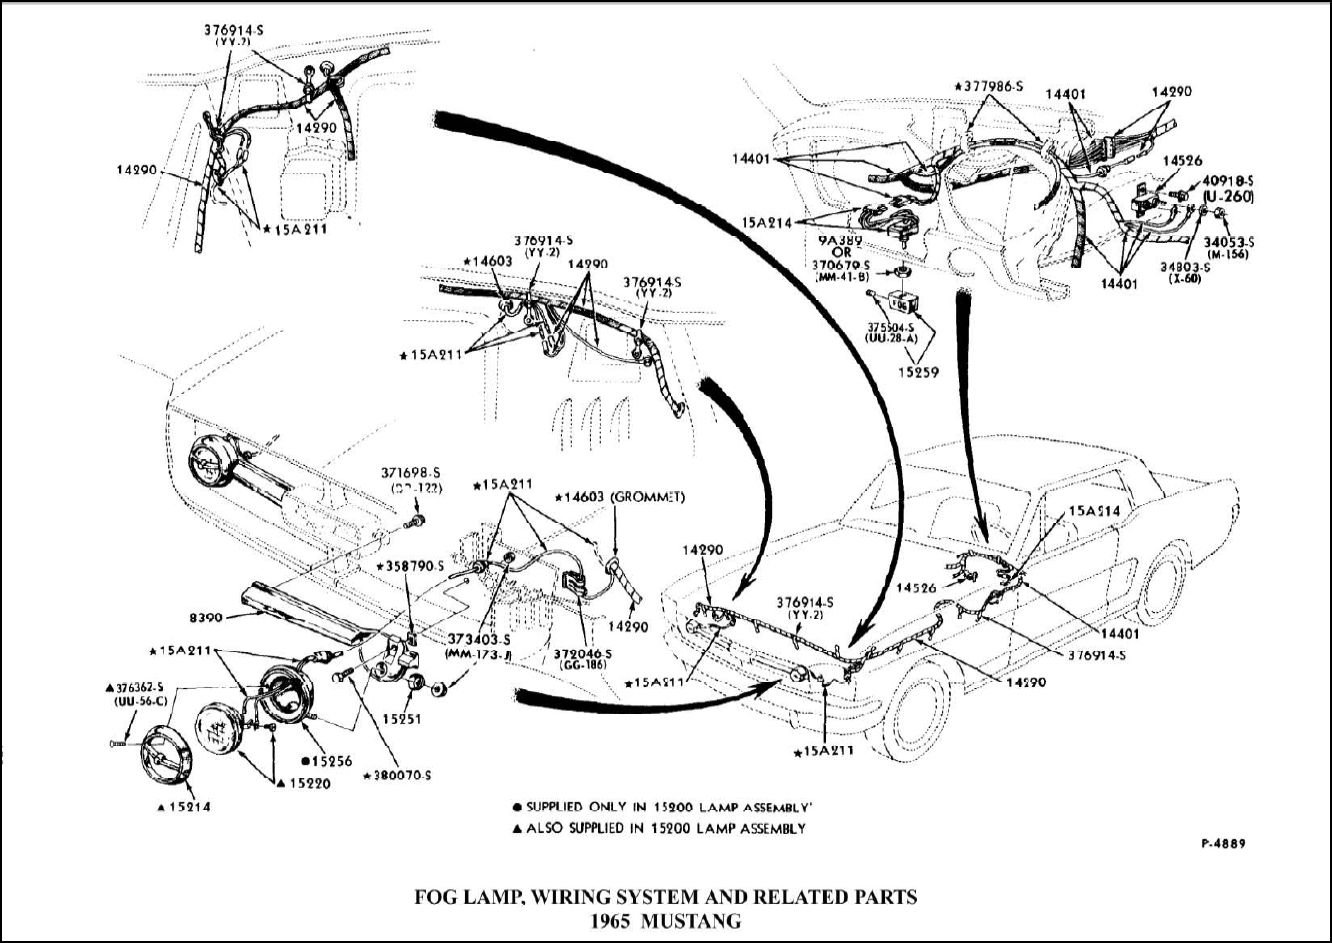 tail light wiring diagram ford f150 vw beetle 1970 1965 mustang gt fog - forum